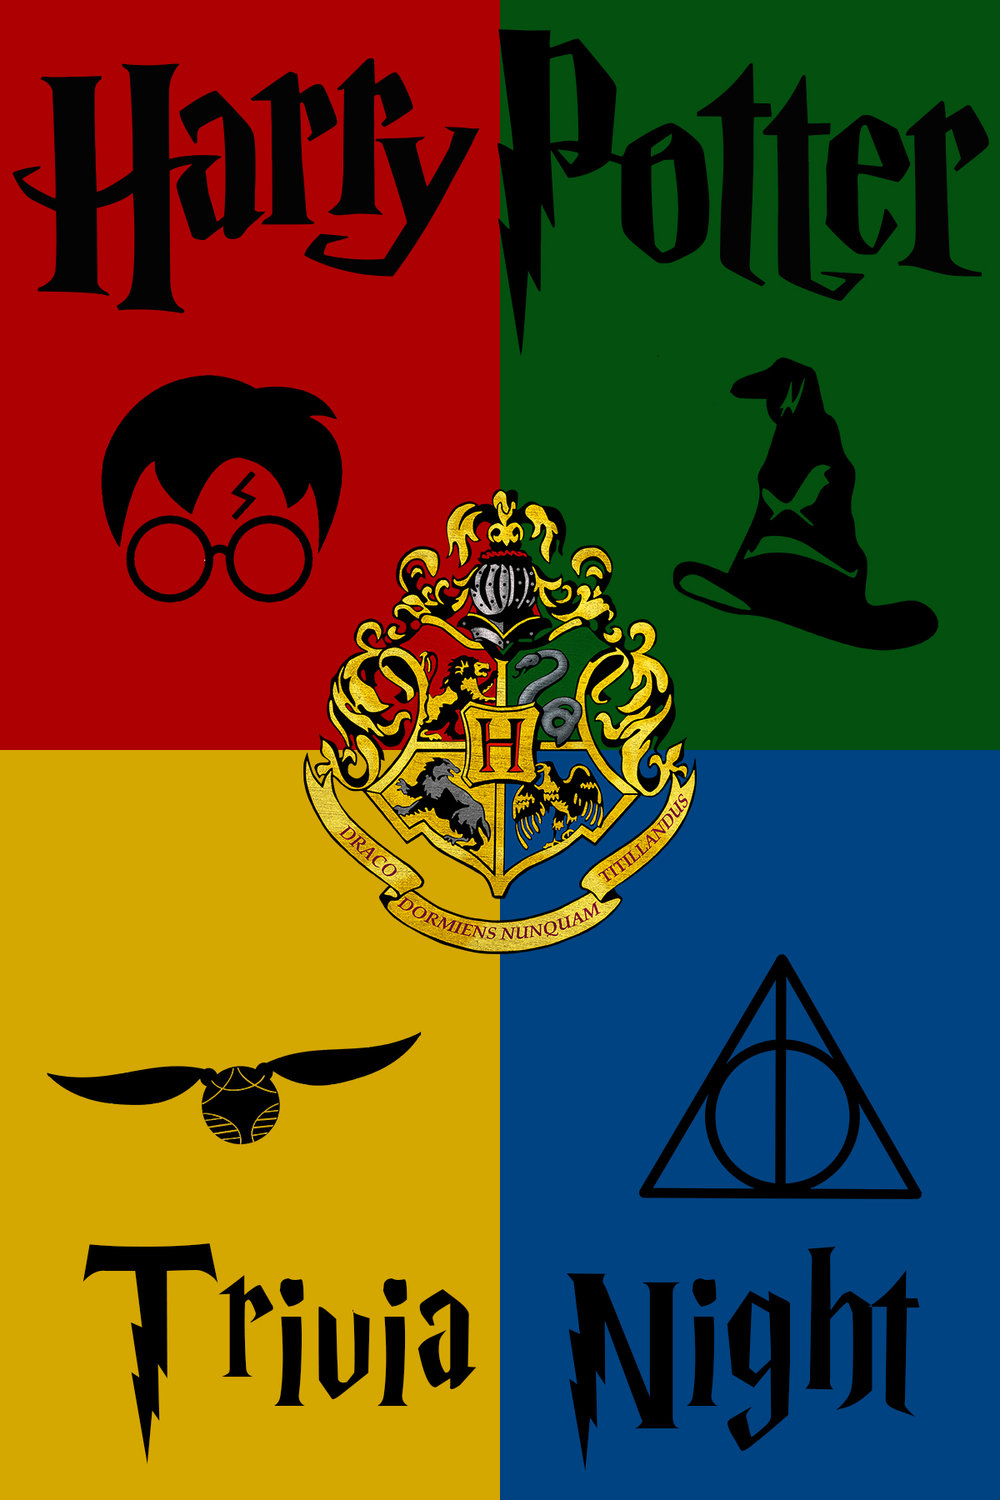 Harry Potter Trivia Simple Flyer.jpg